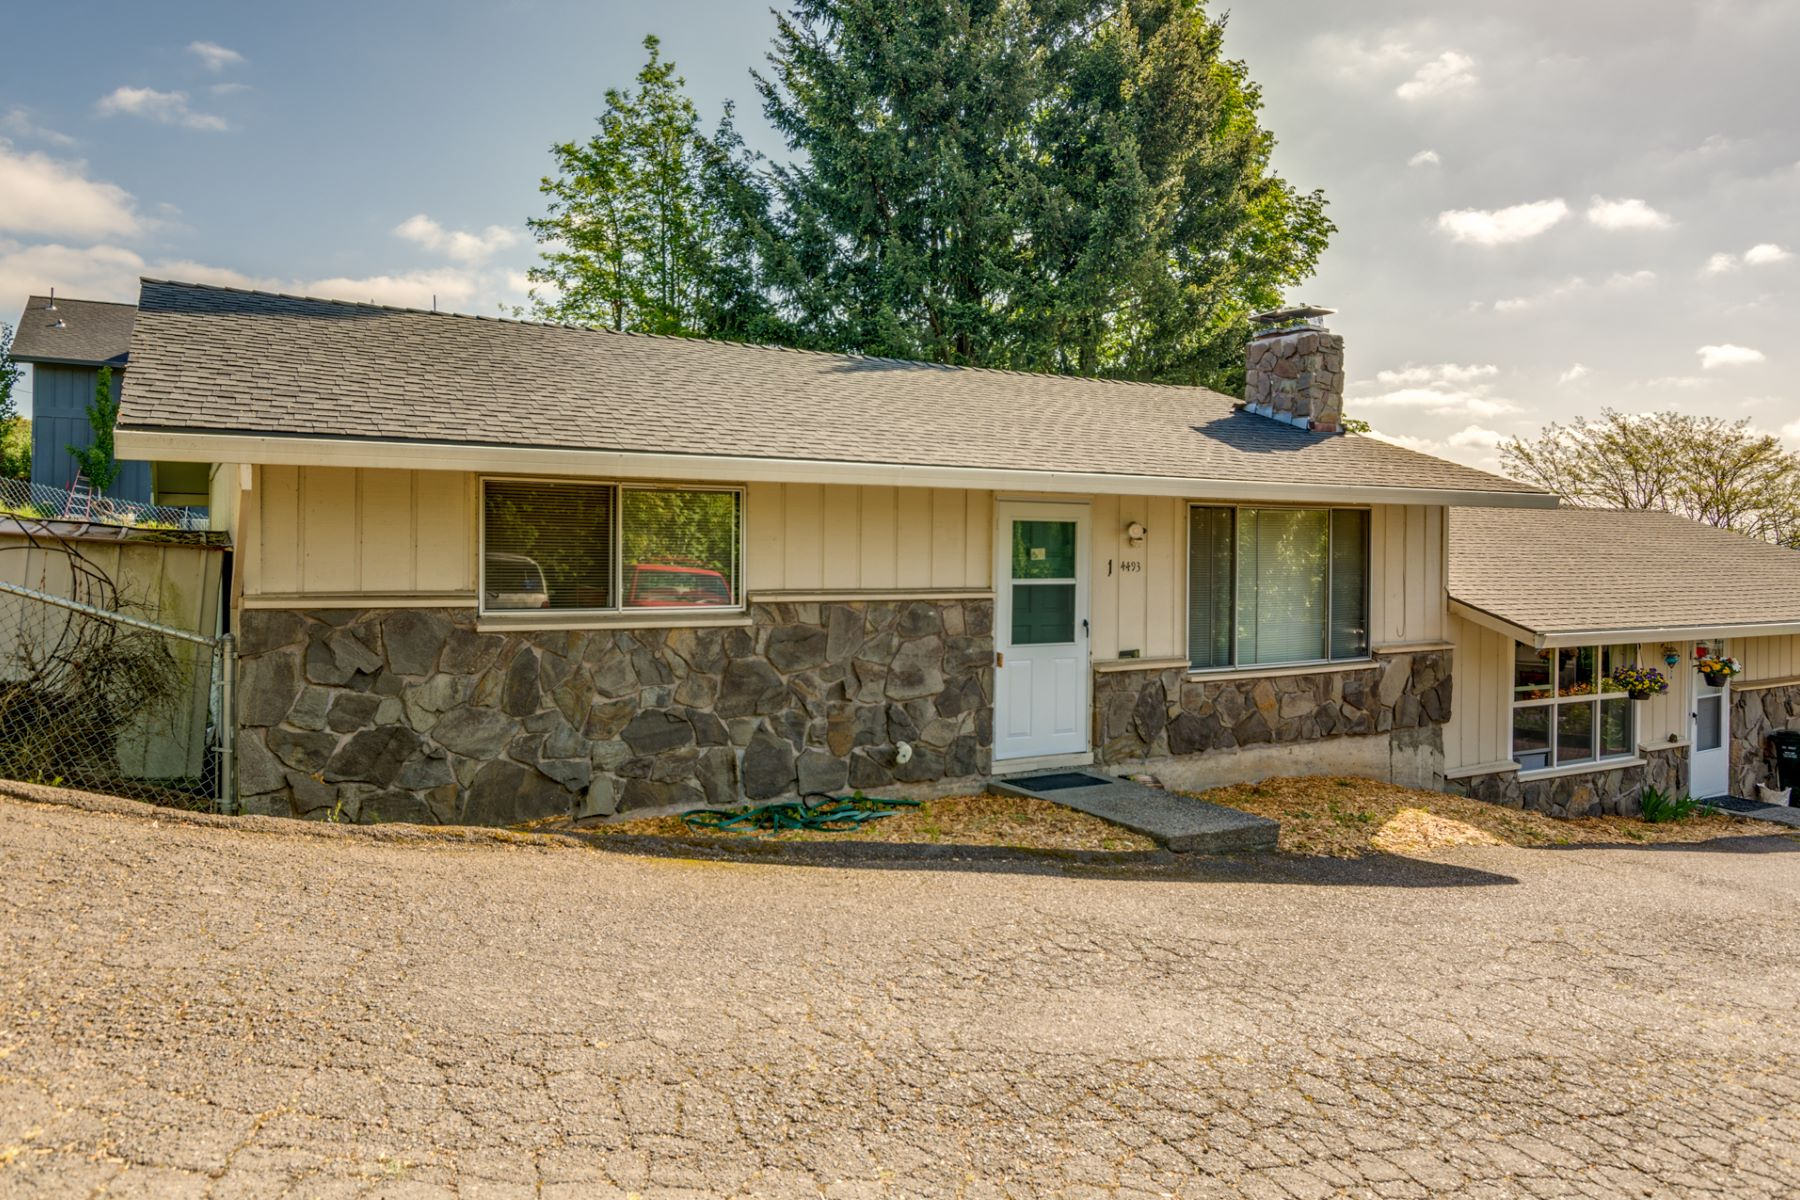 Multi-Family Homes for Active at Multifamily Investment in West Linn 4493 Riverview Ave West Linn, Oregon 97068 United States